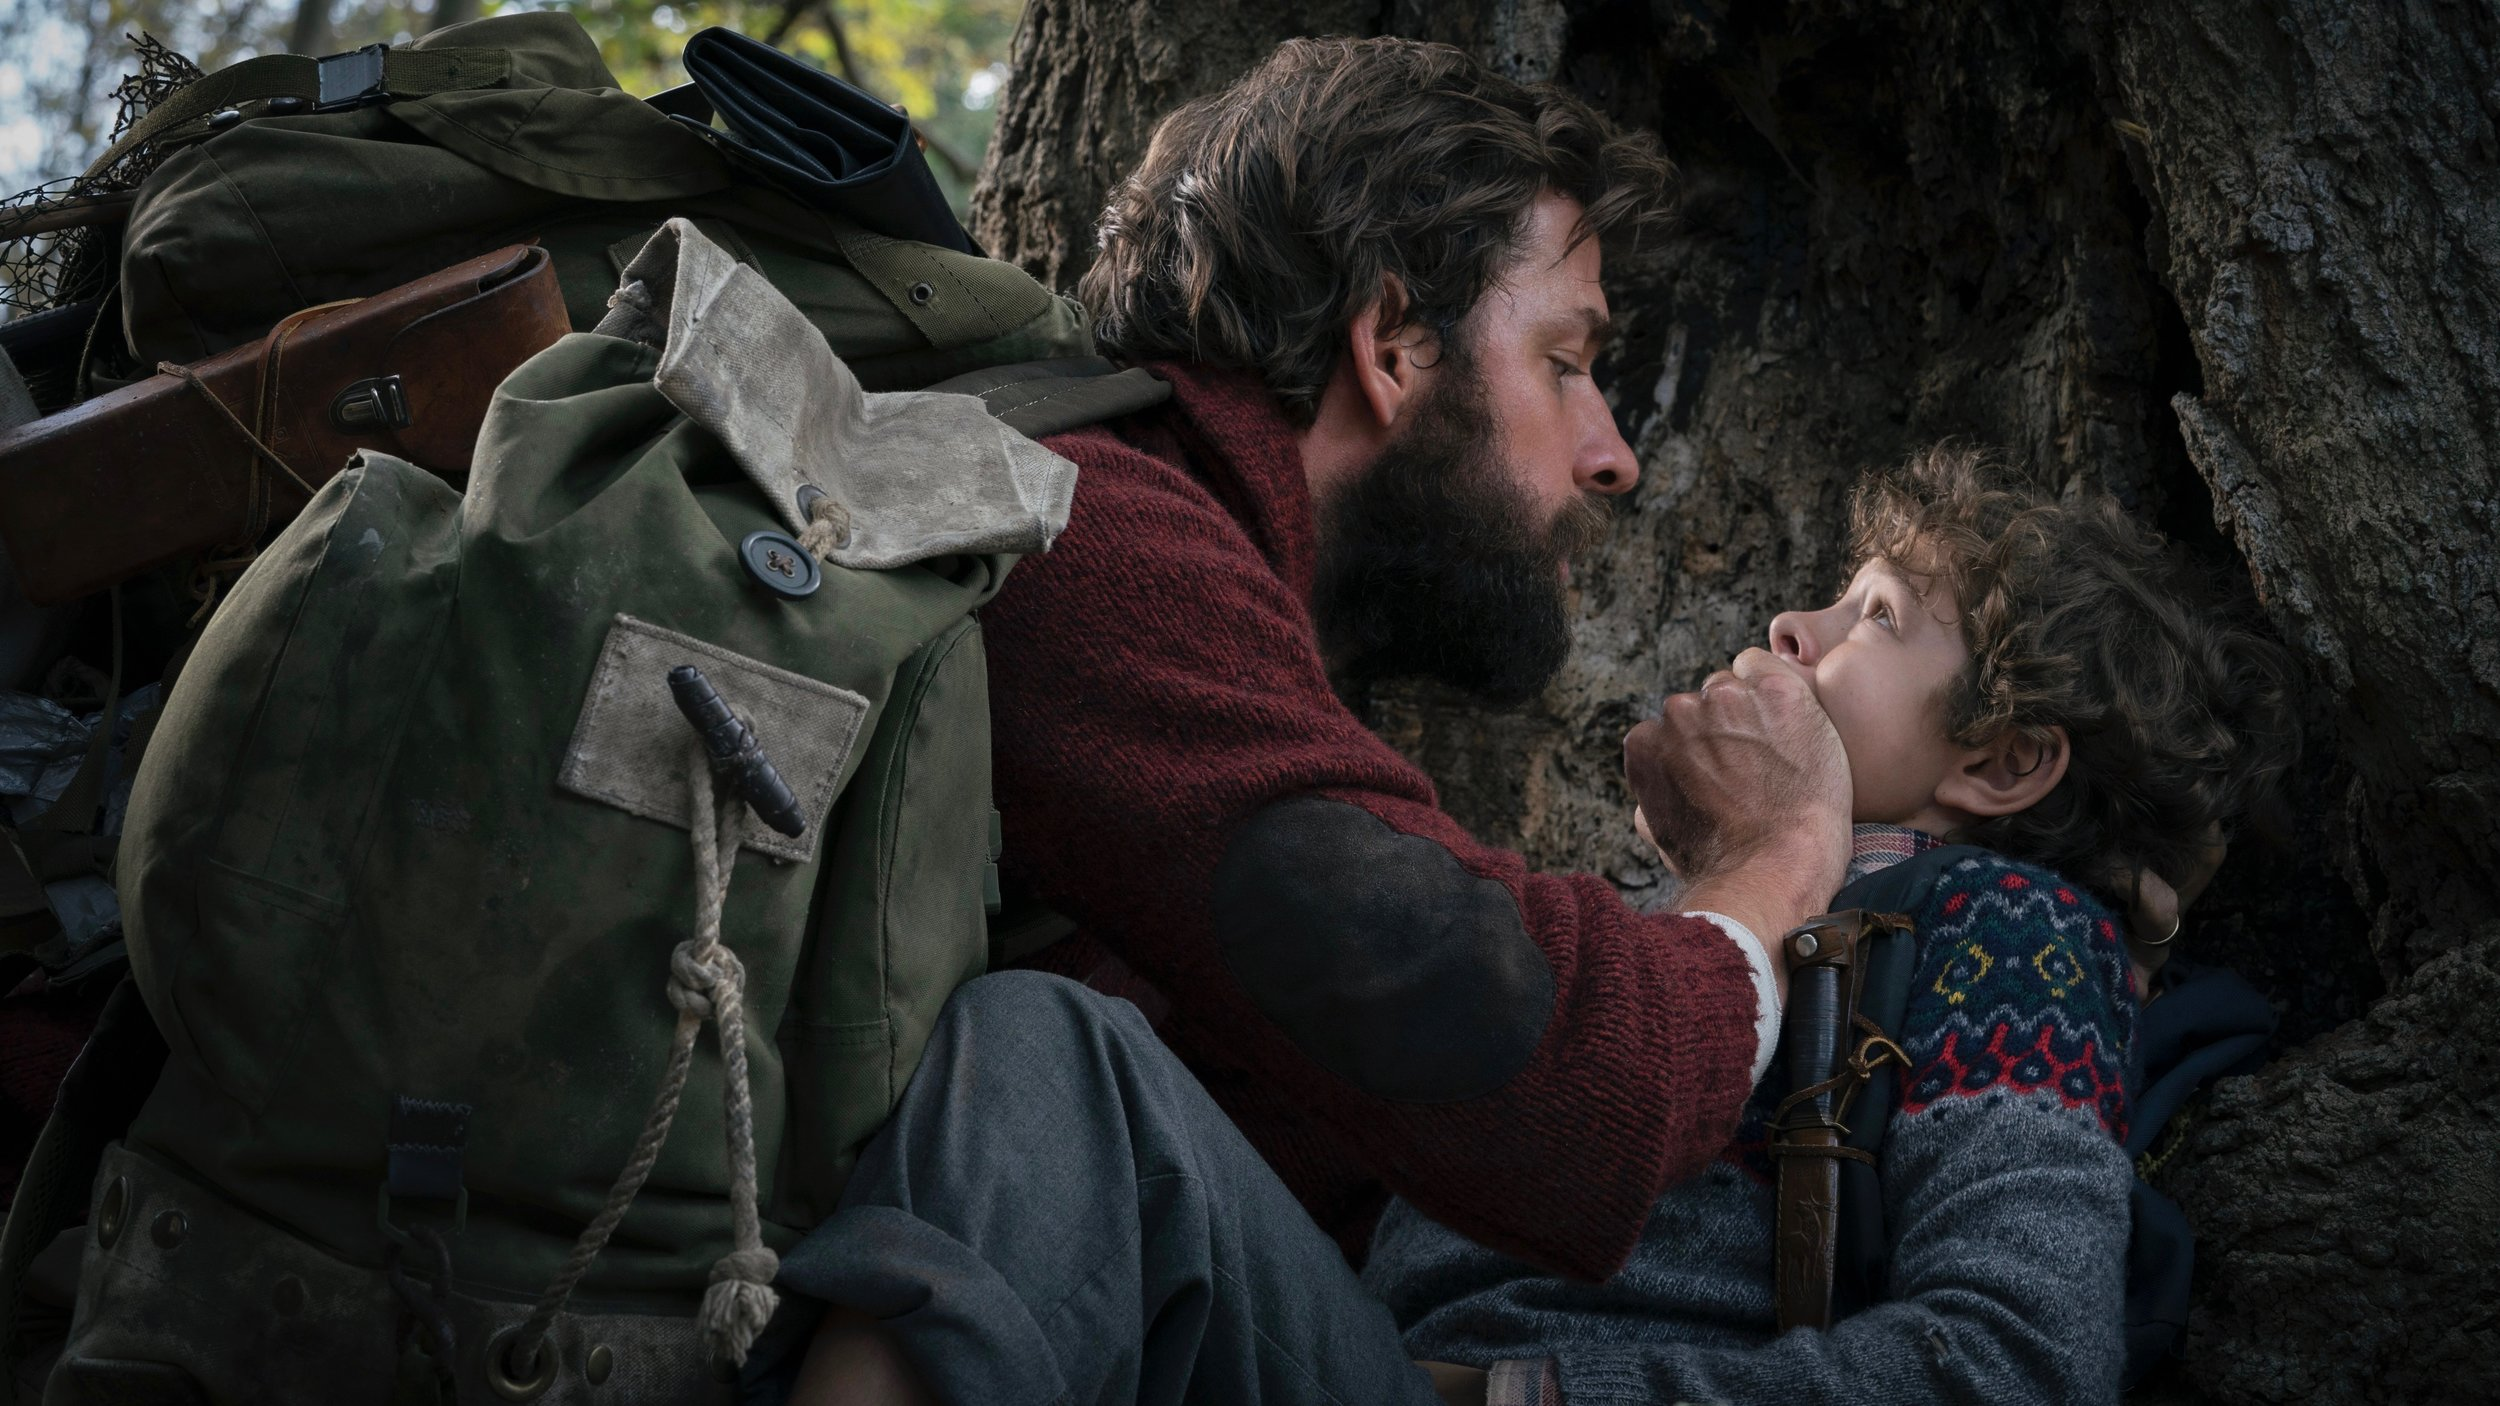 A Quiet Place pic.jpg